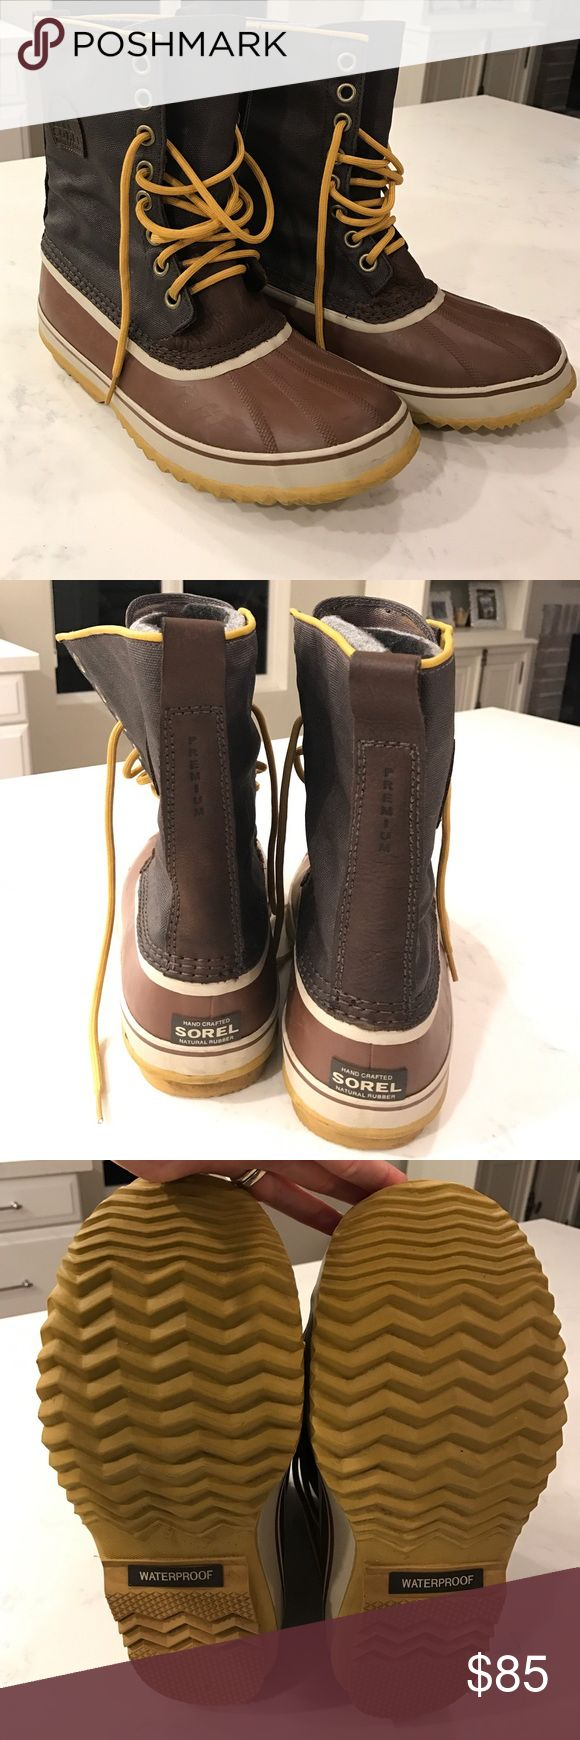 Men's Sorel boots Men's Sorel boots. Gently worn once. In perfect condition. Sorel Shoes Rain & Snow Boots